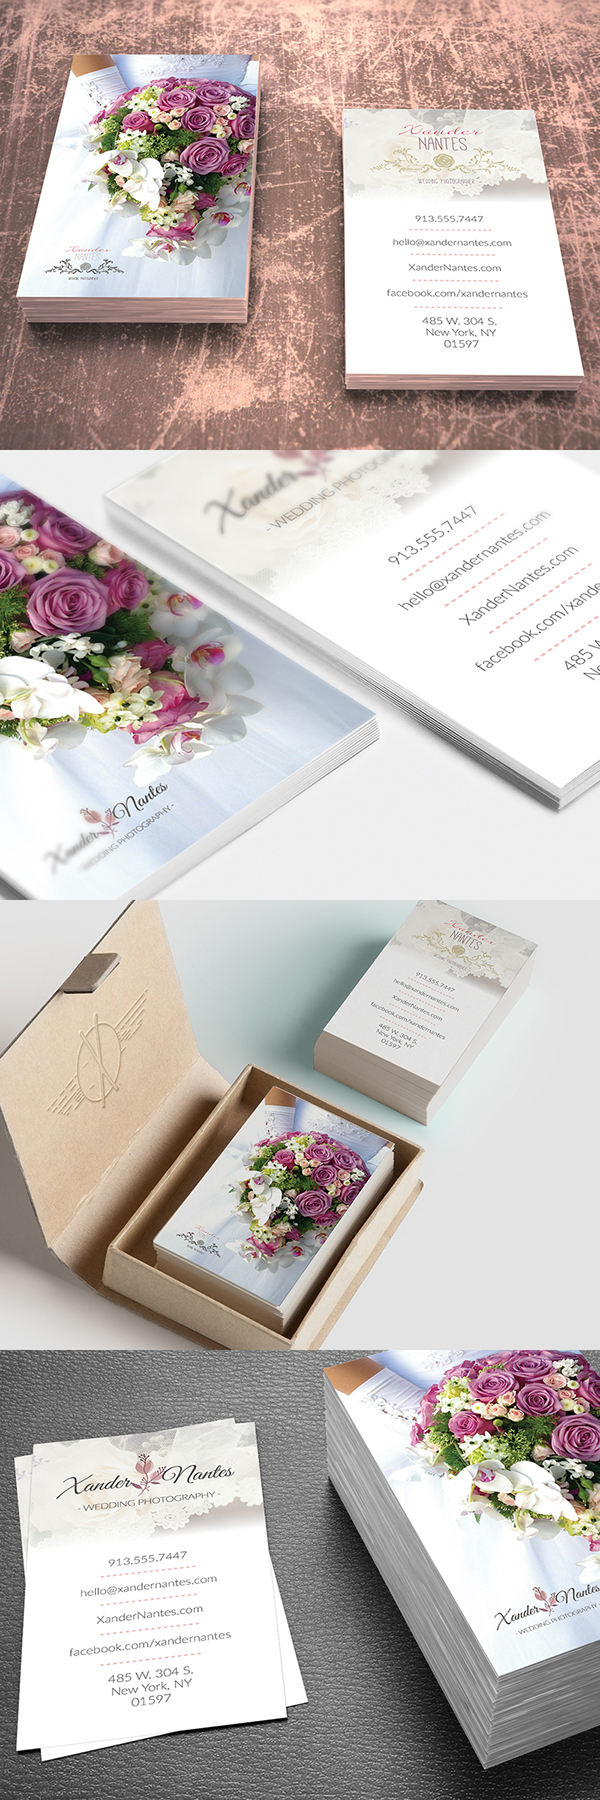 Wedding photographer business card photoshop template on behance wajeb